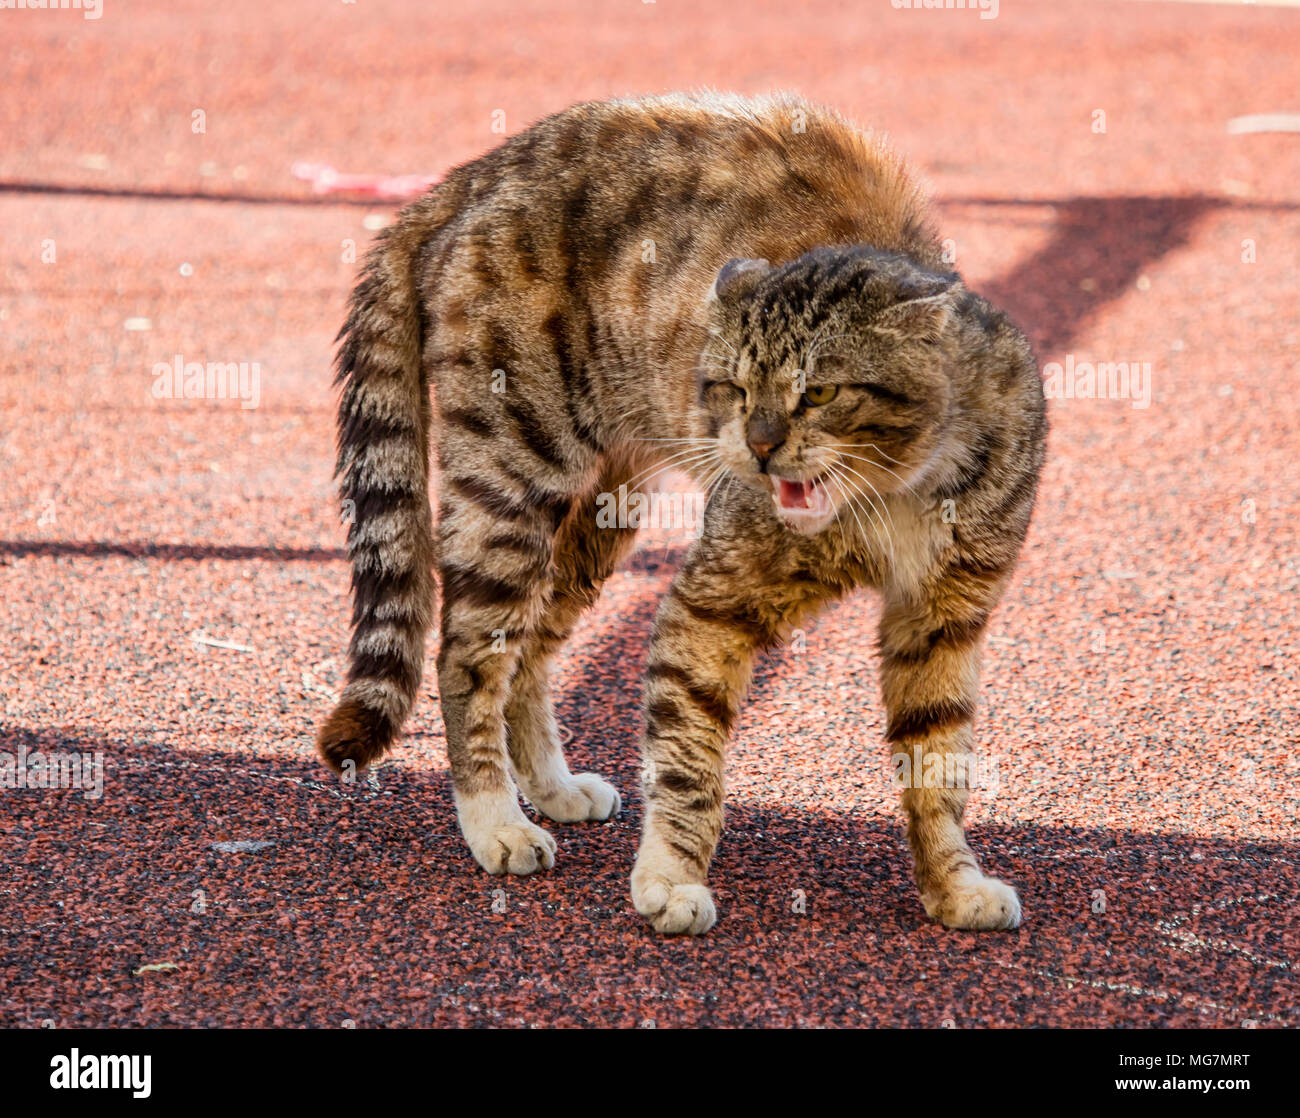 An alley cat, arching its back in a threatening position - Stock Image